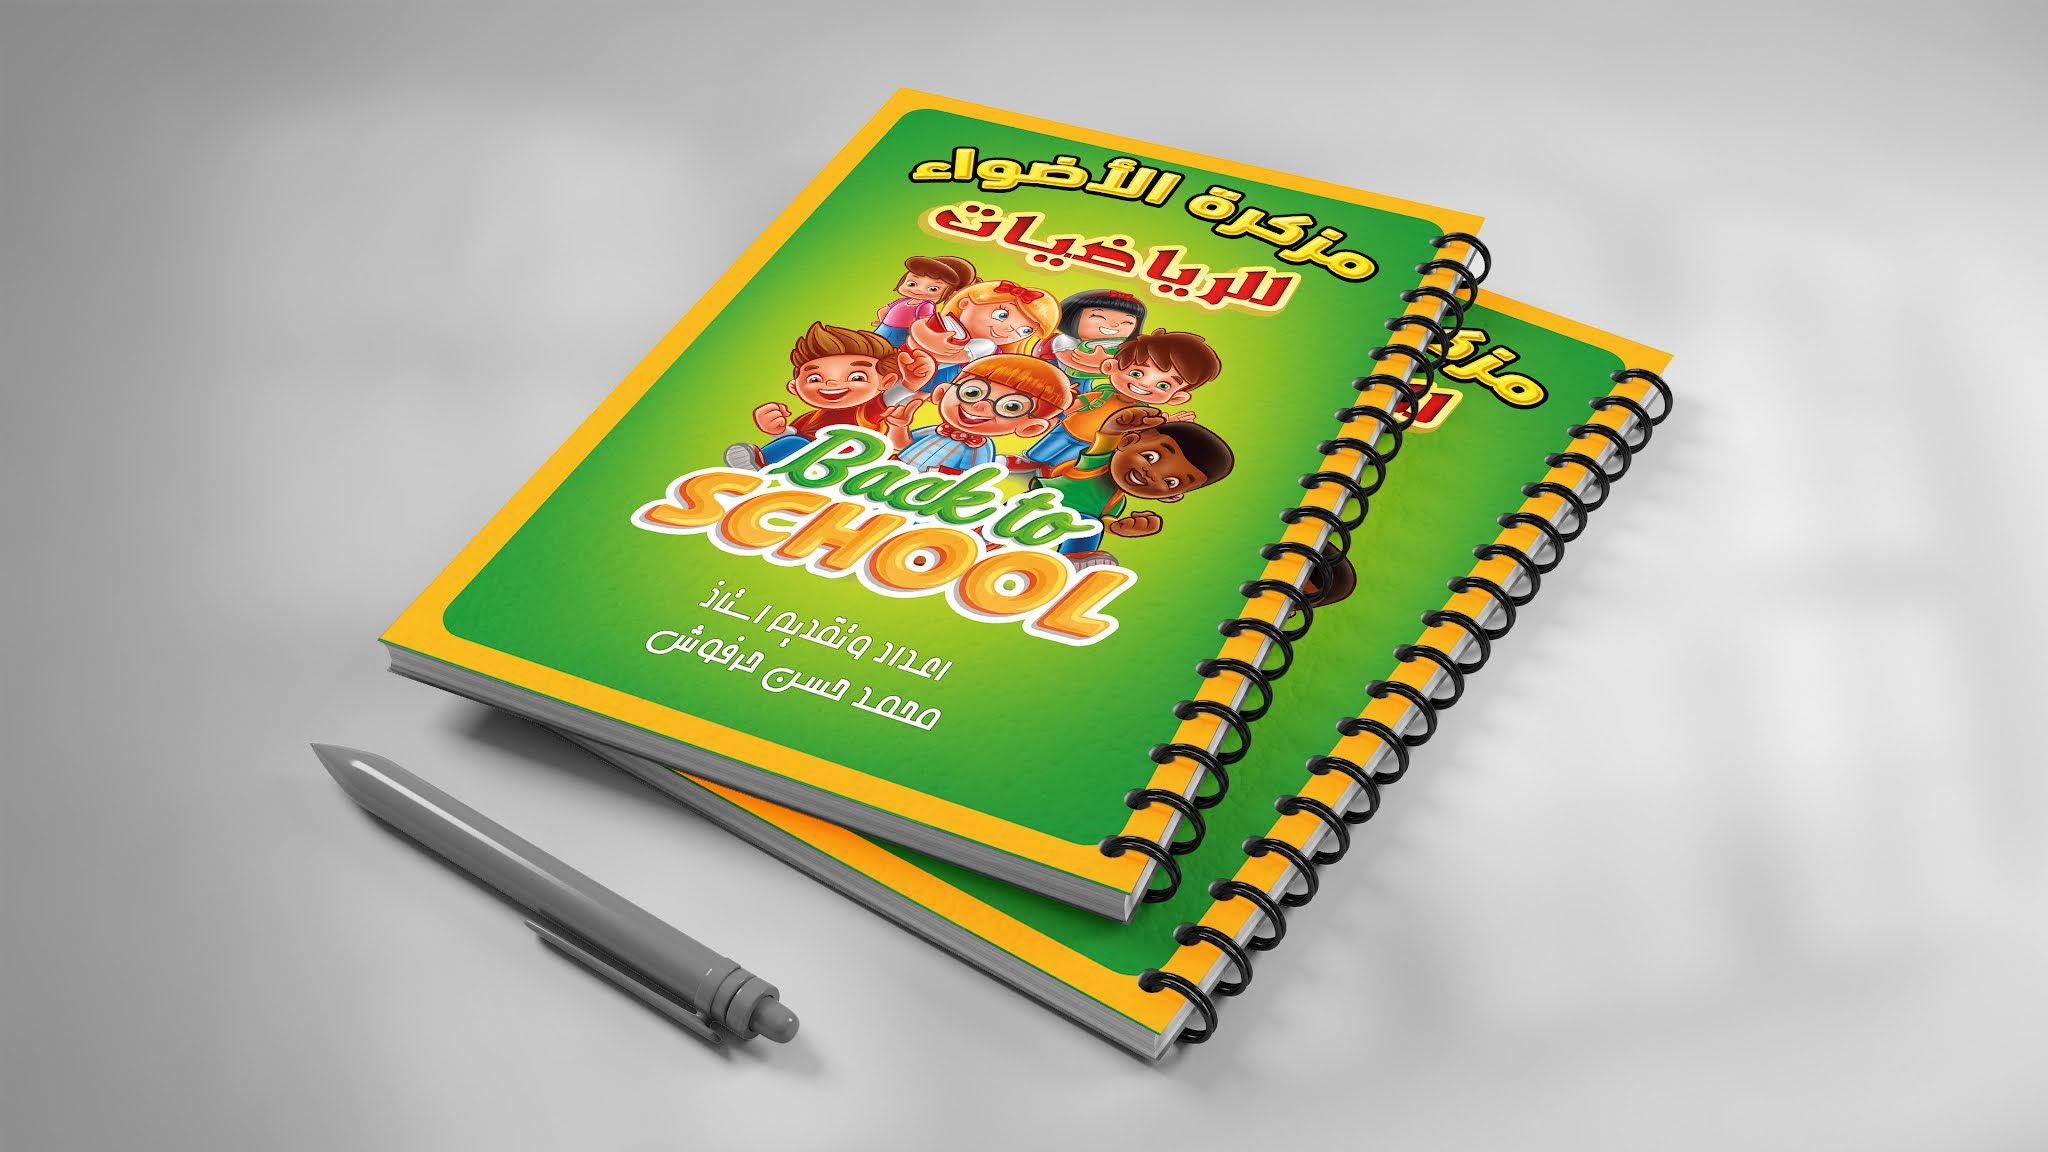 Free download cover note book in mathematics and other subjects